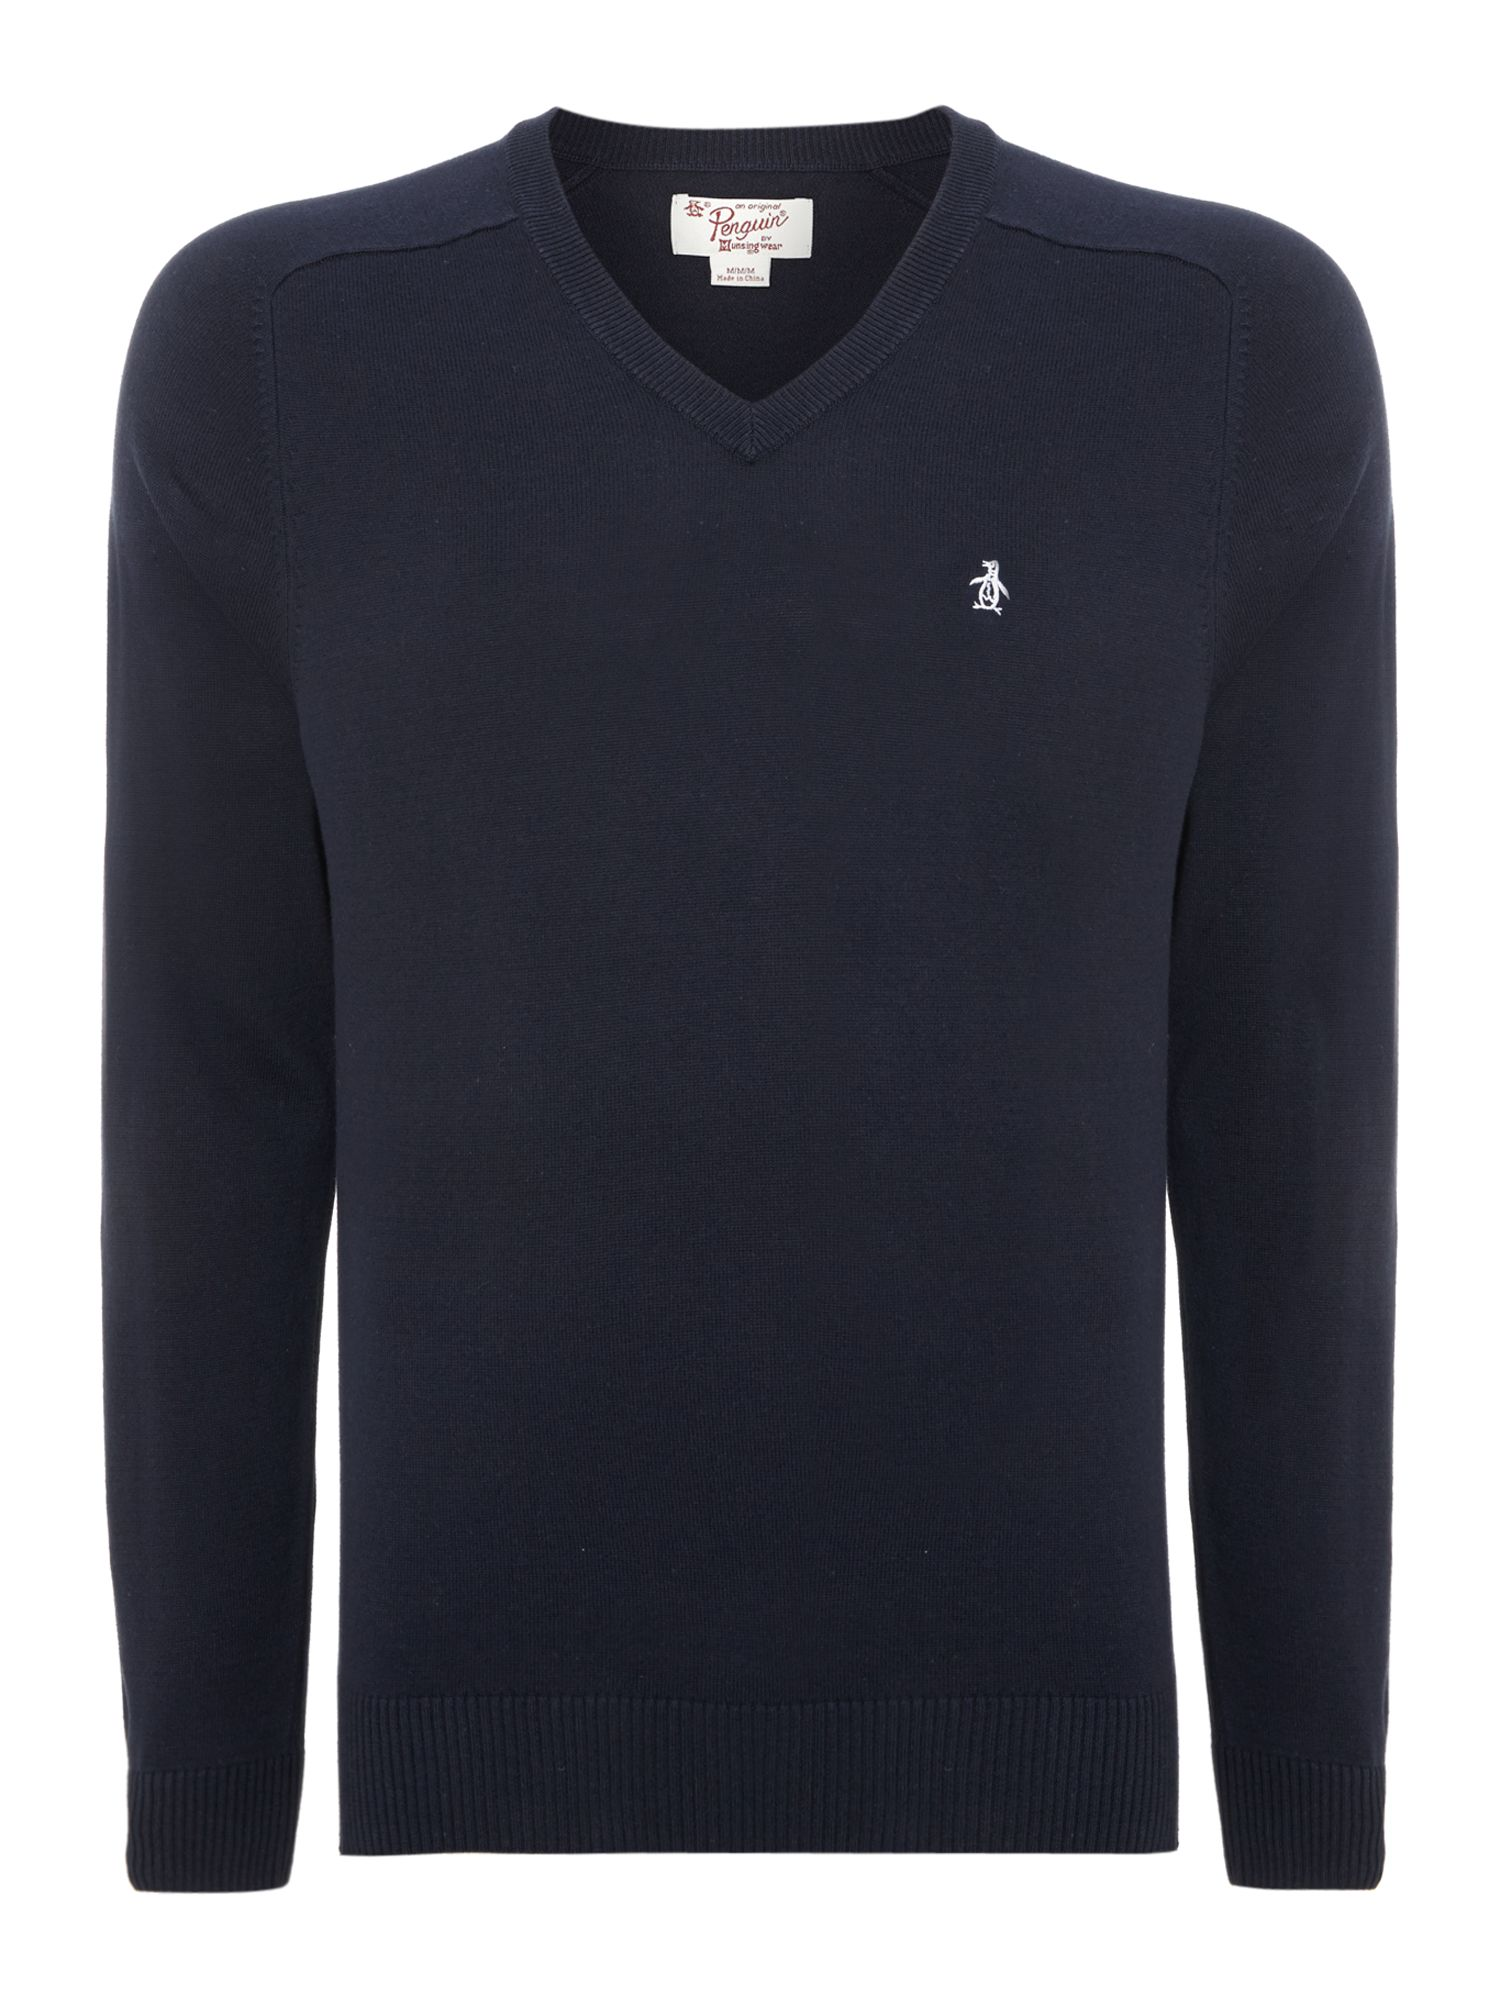 Camford v neck jumper